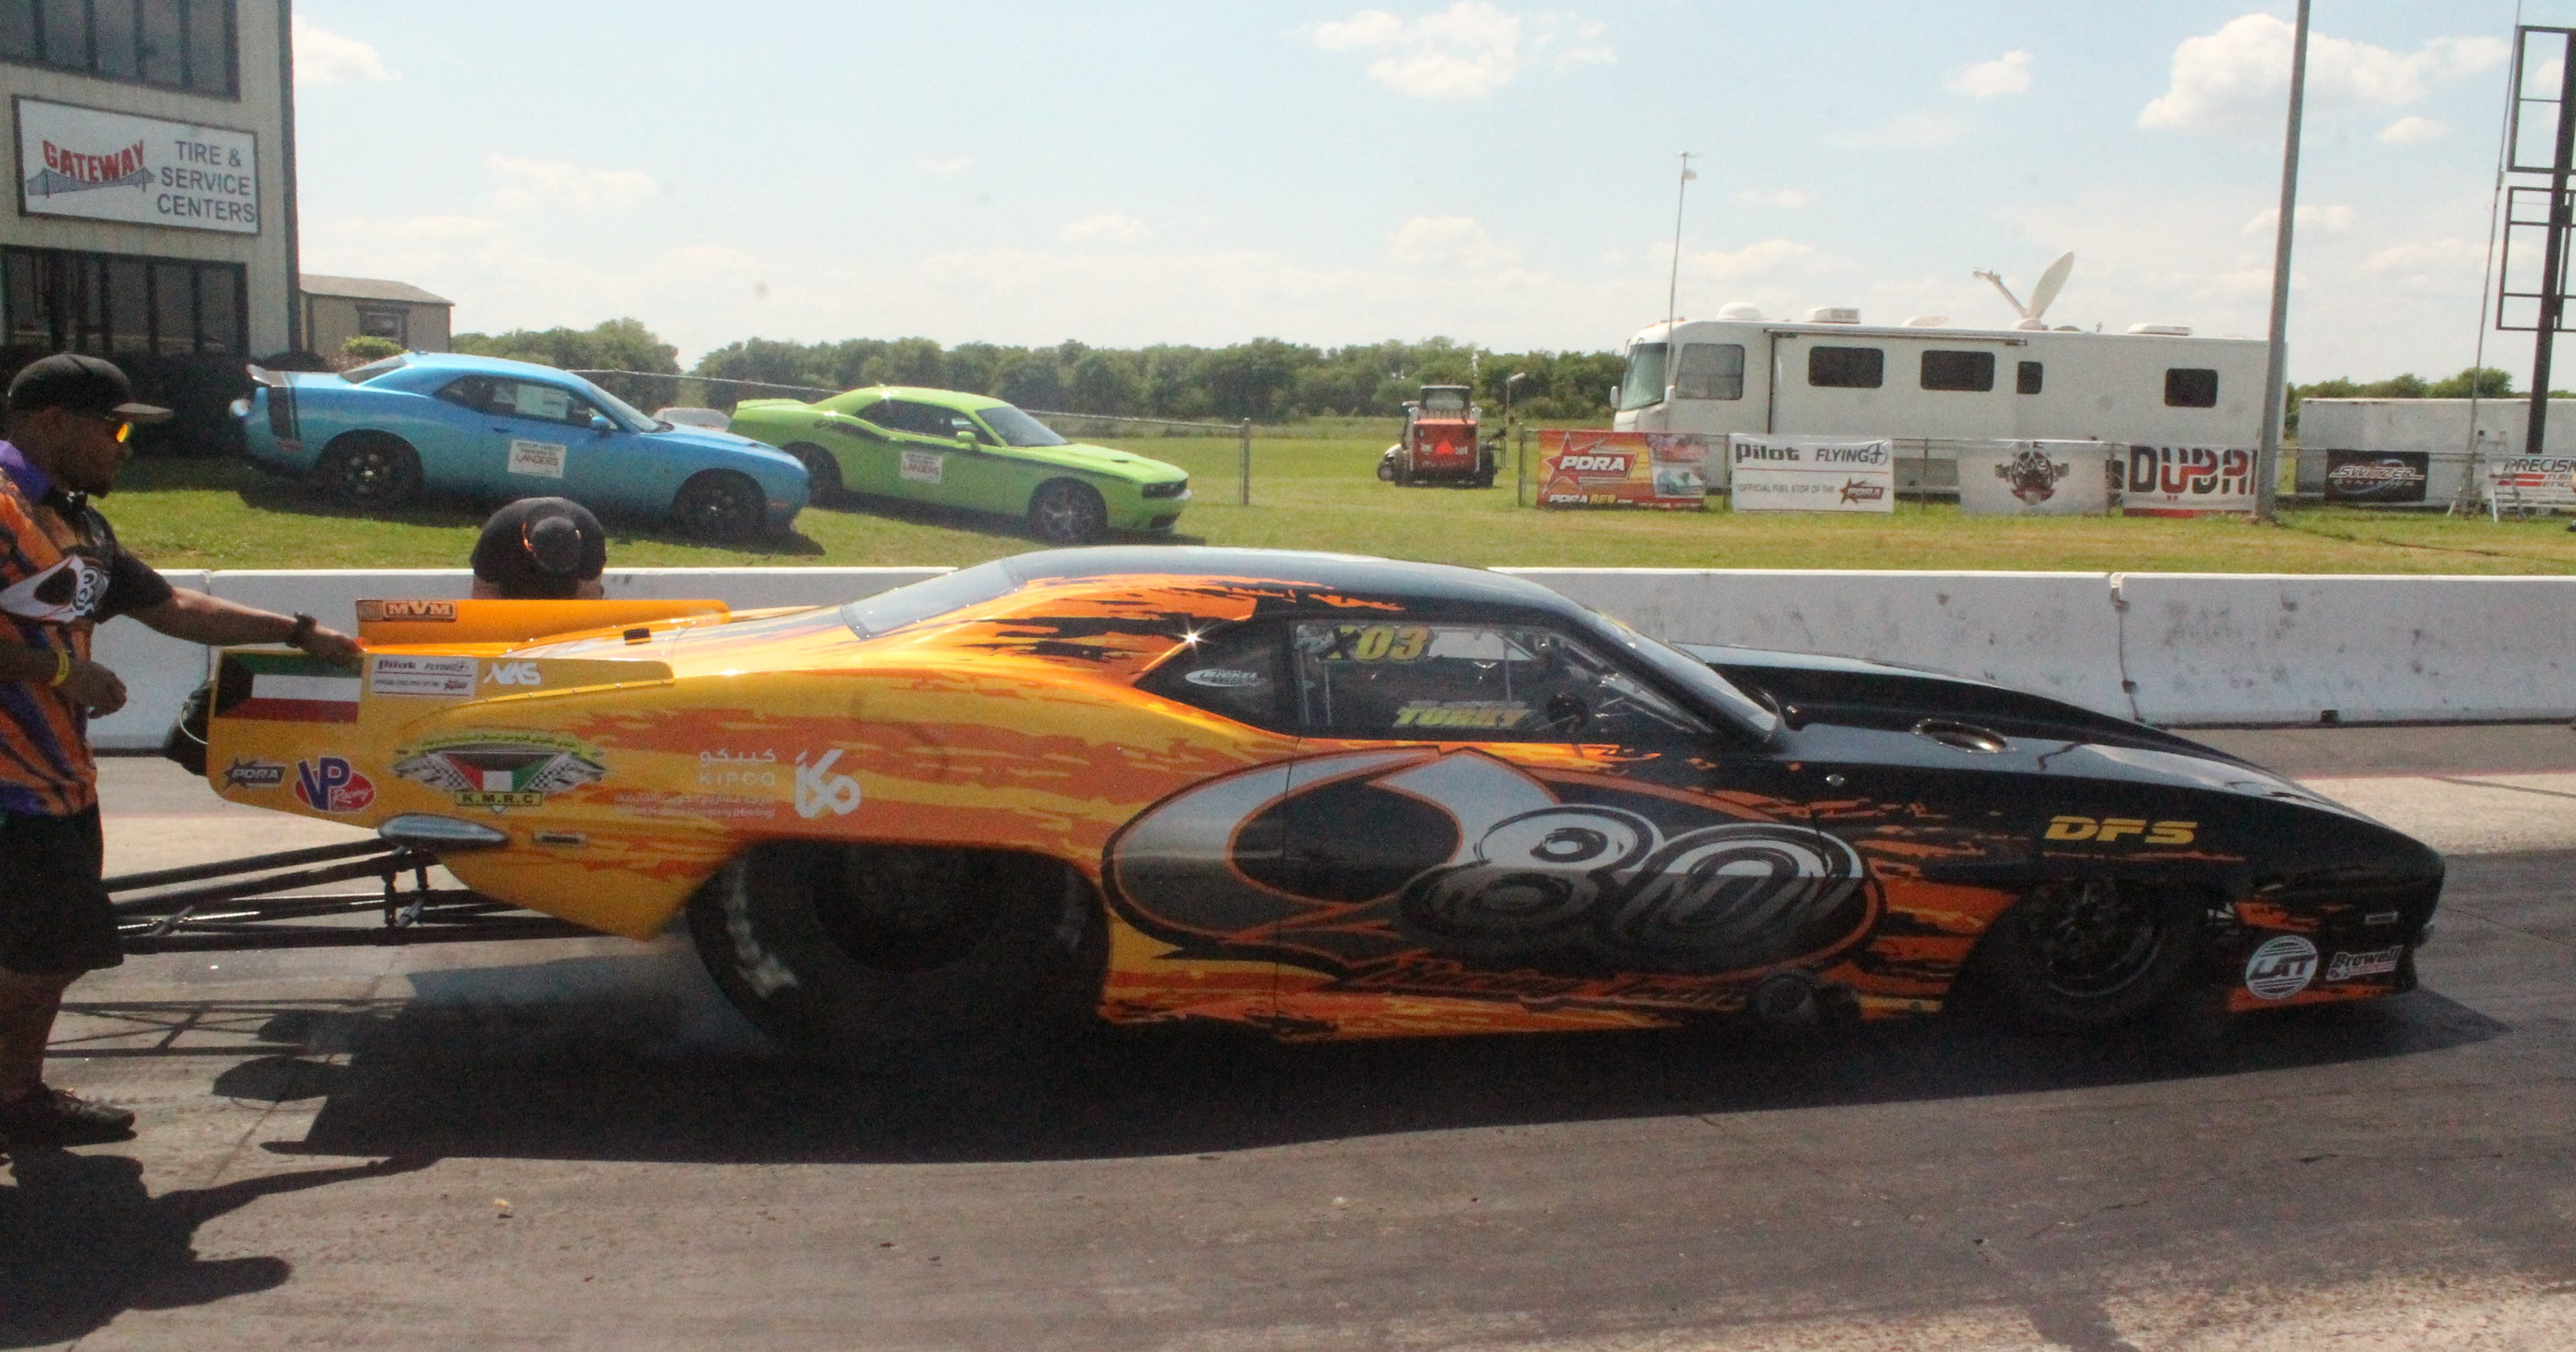 Champions crowned in the Lucas Oil Drag Racing Series